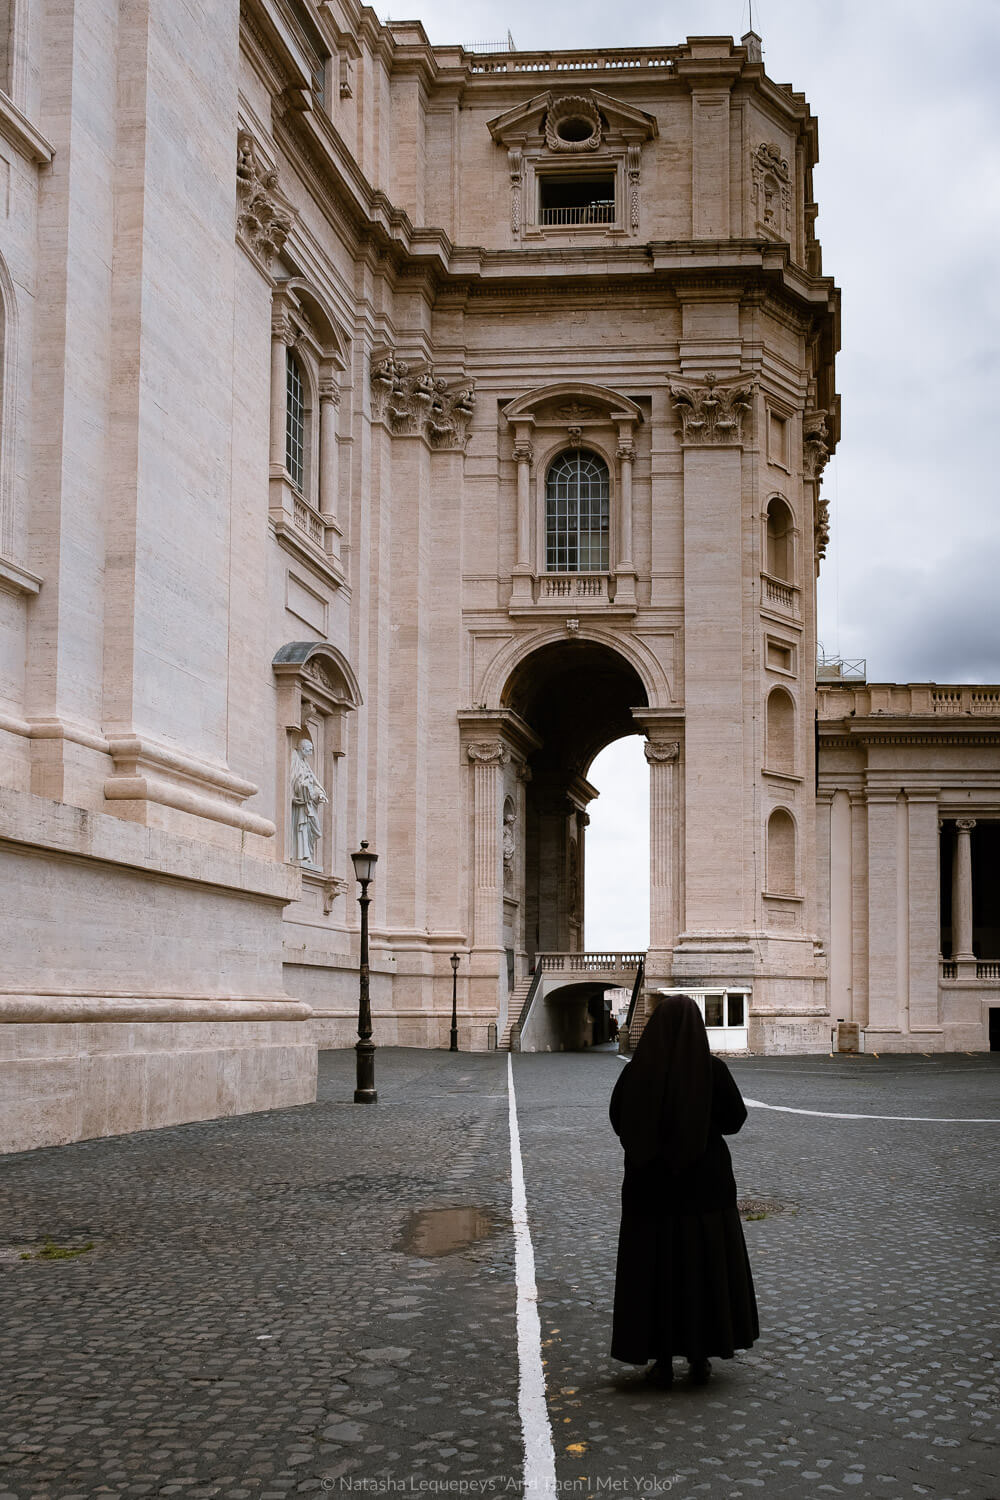 """A nun walking in the Vatican. Travel photography and guide by © Natasha Lequepeys for """"And Then I Met Yoko"""". #rome #italy #travelblog #travelphotography"""